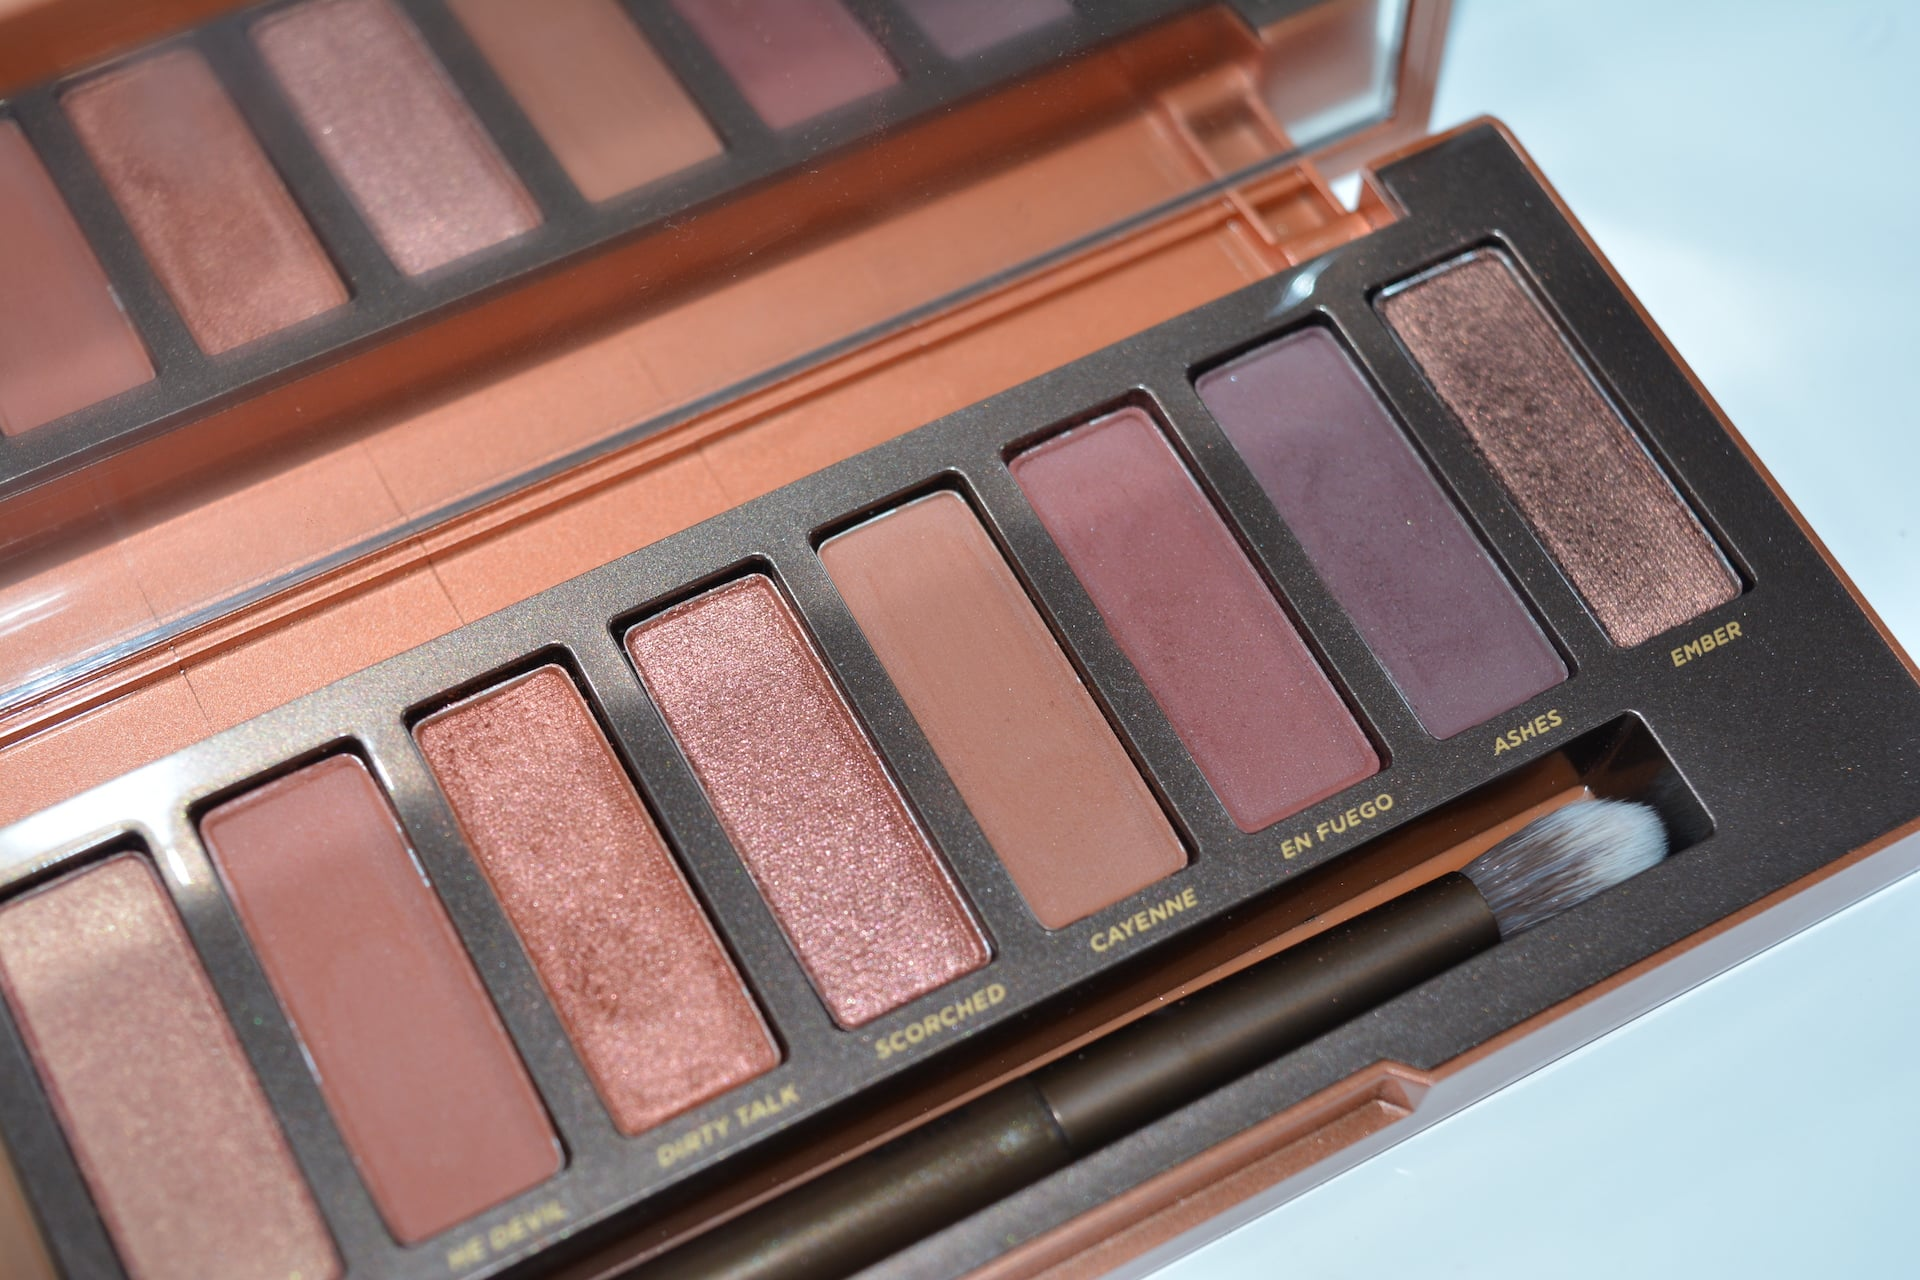 Naked Heat Look Review 04